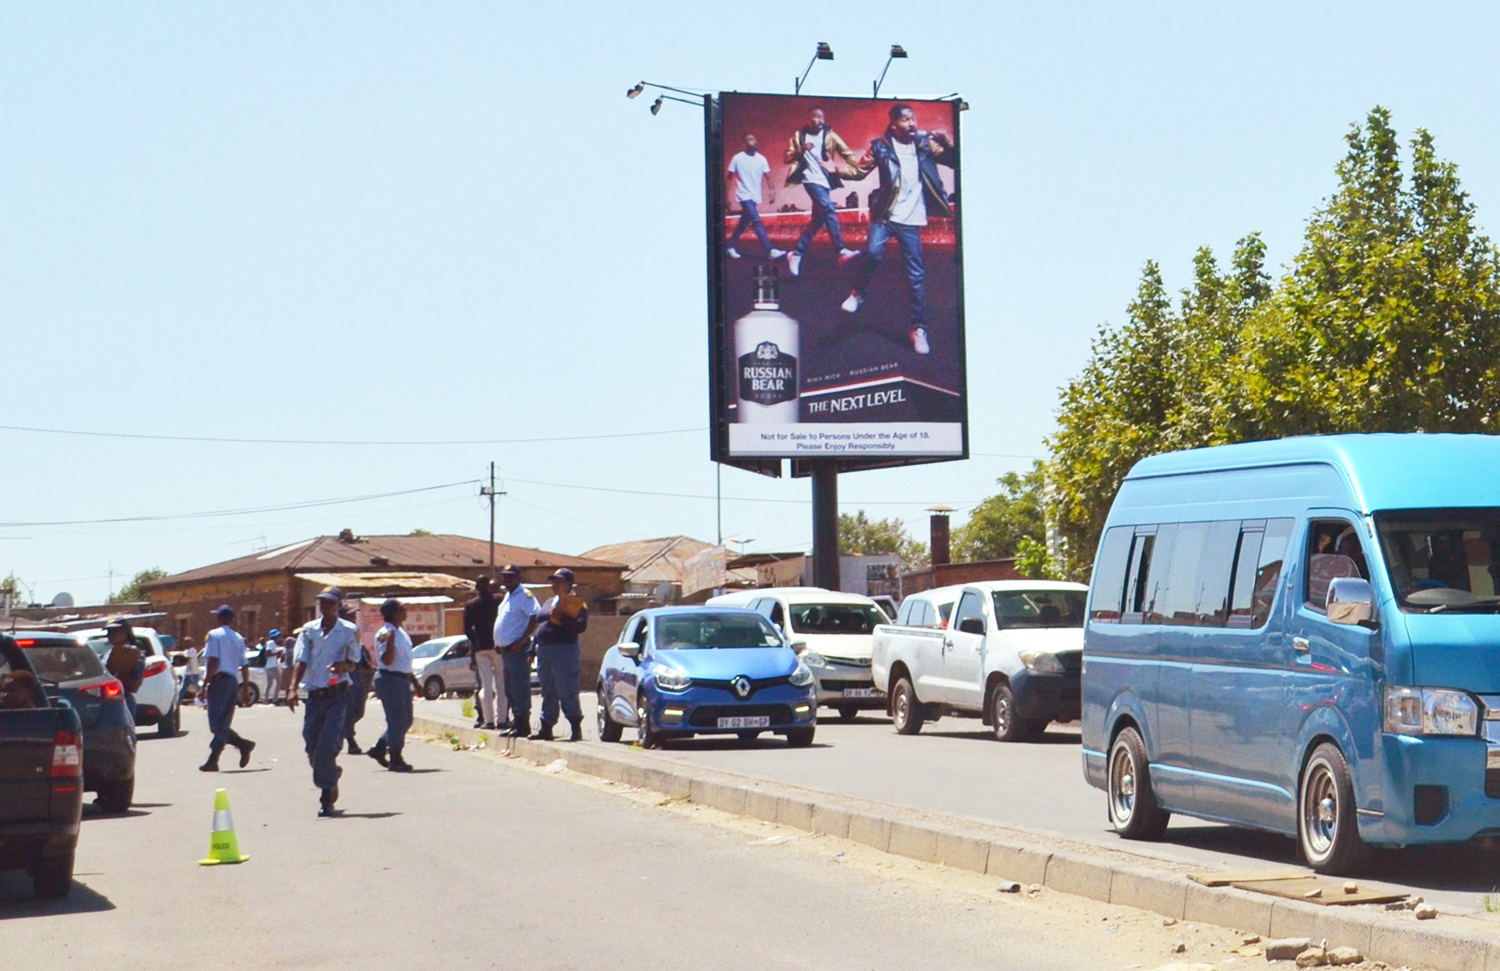 9x6 super sign at Alex Plaza, Alexandra Johannesburg Gauteng. Billboard at Alex Plaza Johannesburg Gauteng. Advertise at Alex Plaza Johannesburg.